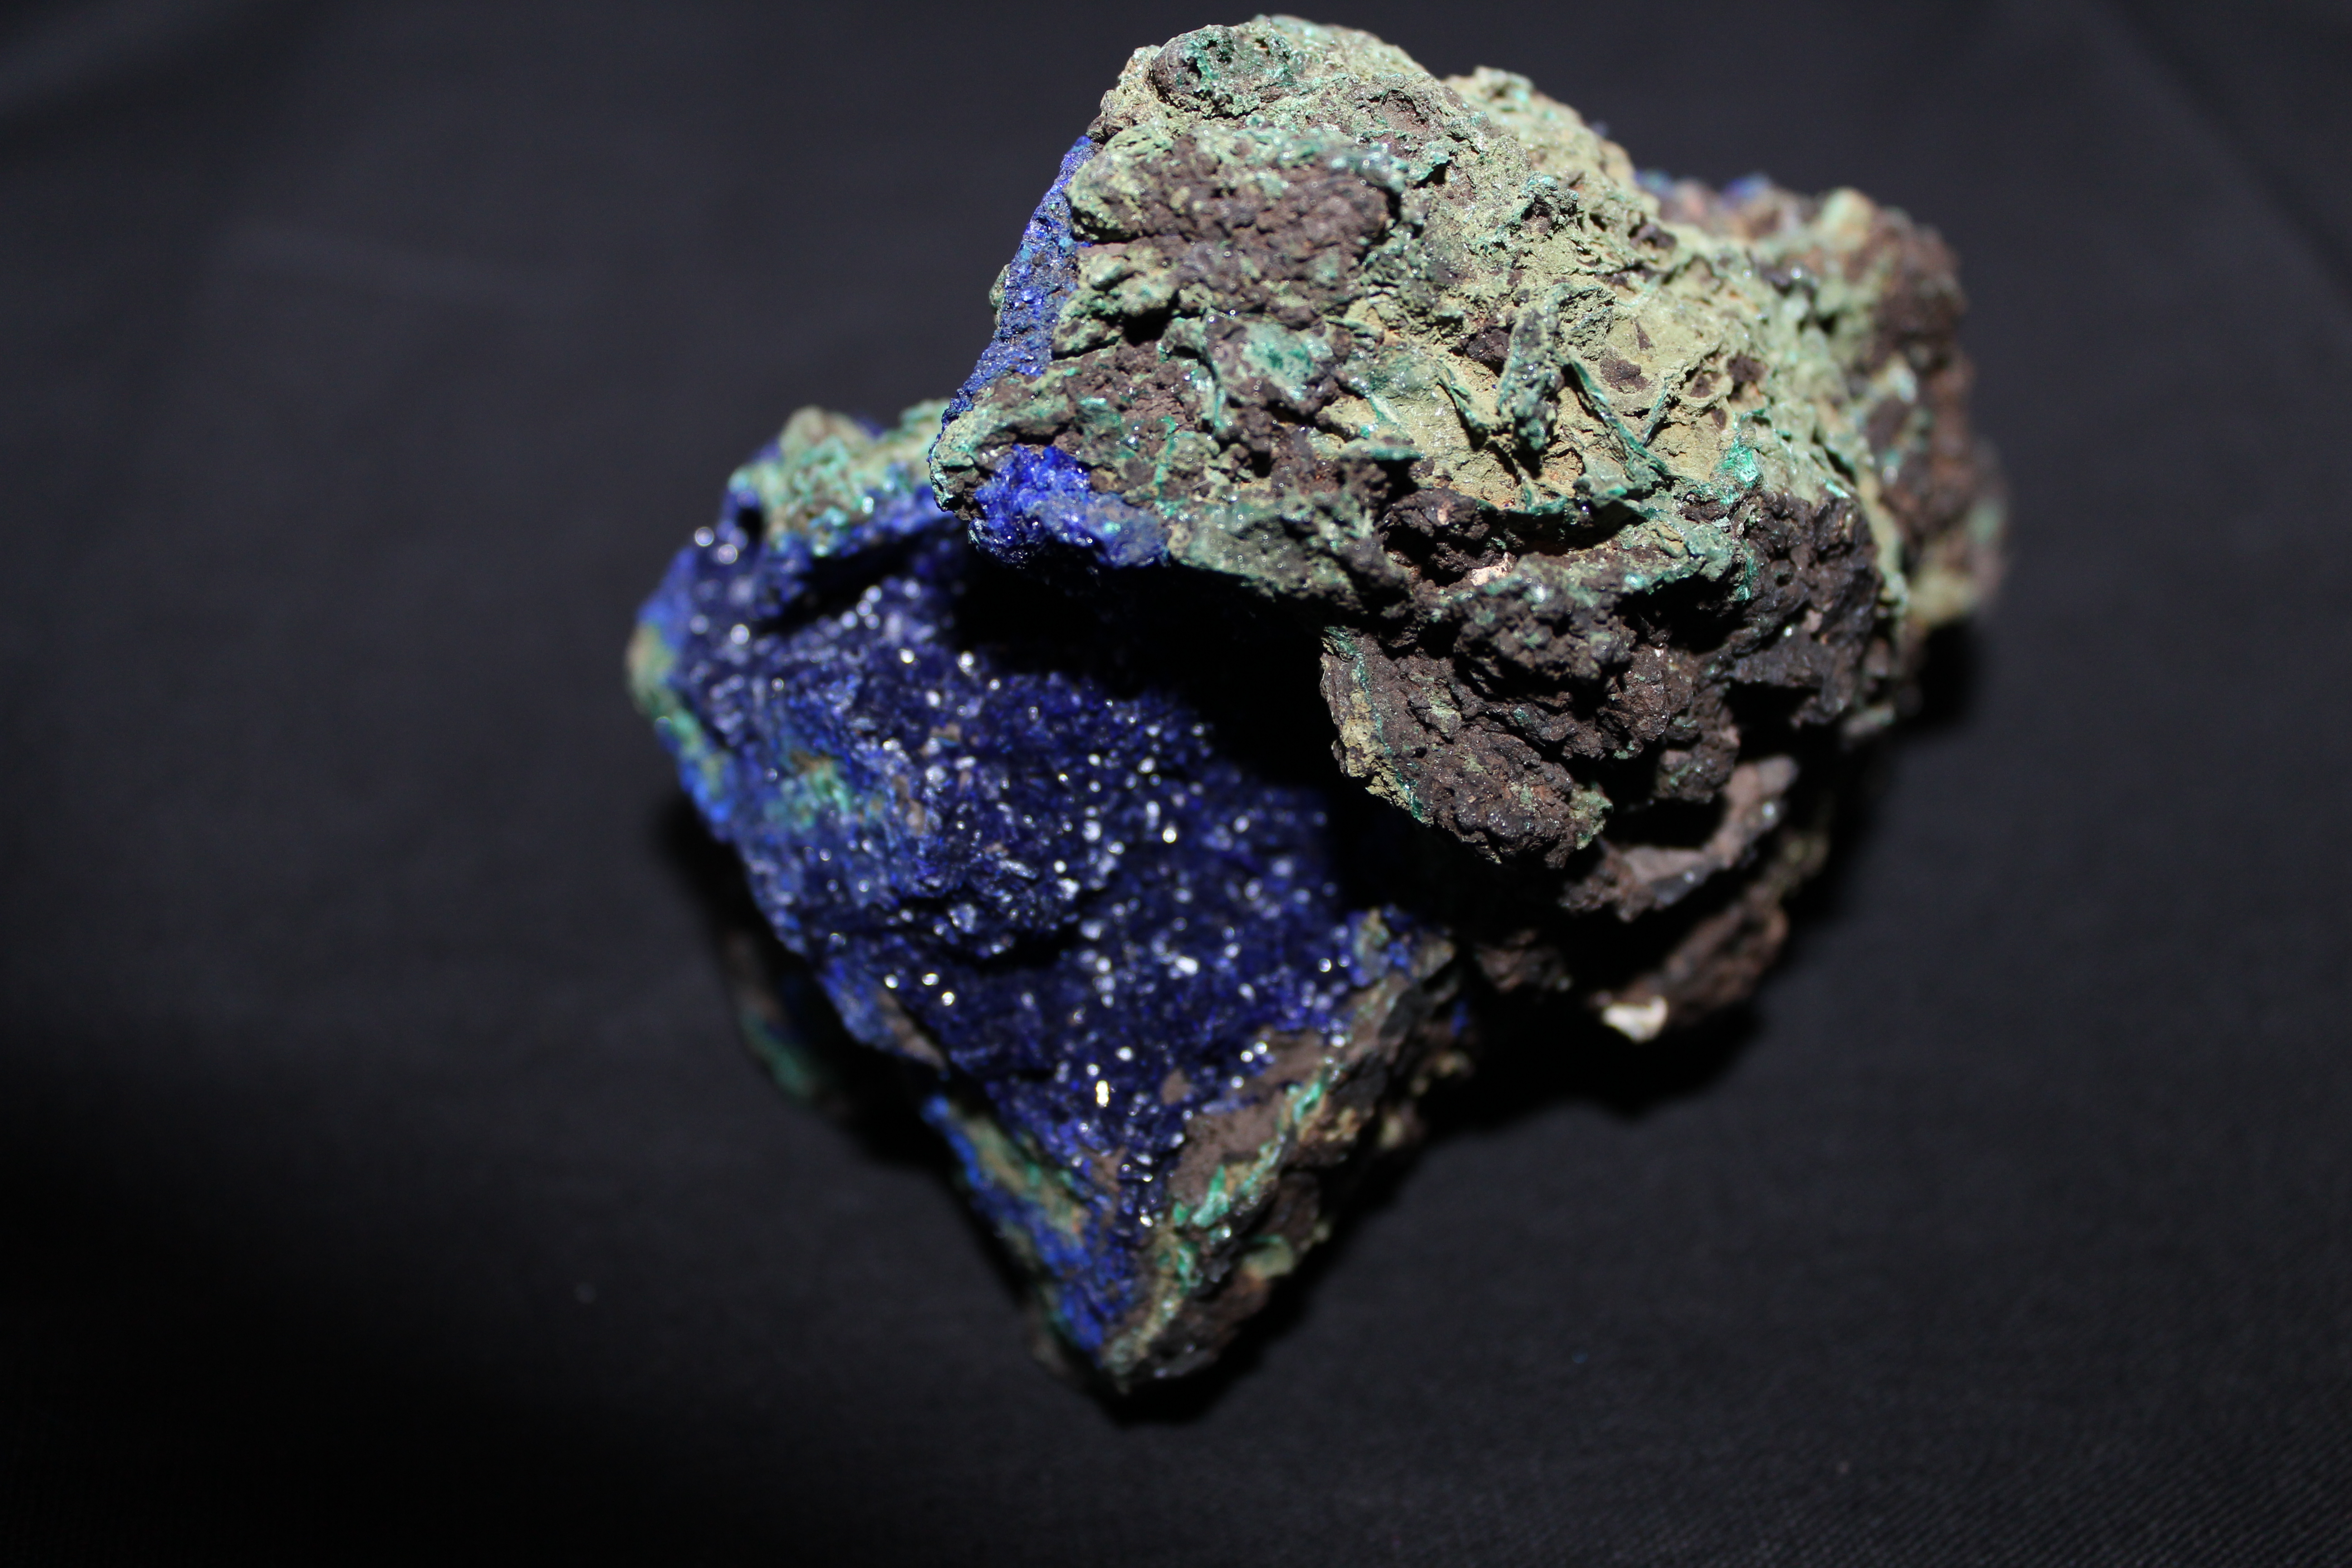 Malachite and Azurite Mineral Specimen - Celestial Earth ...